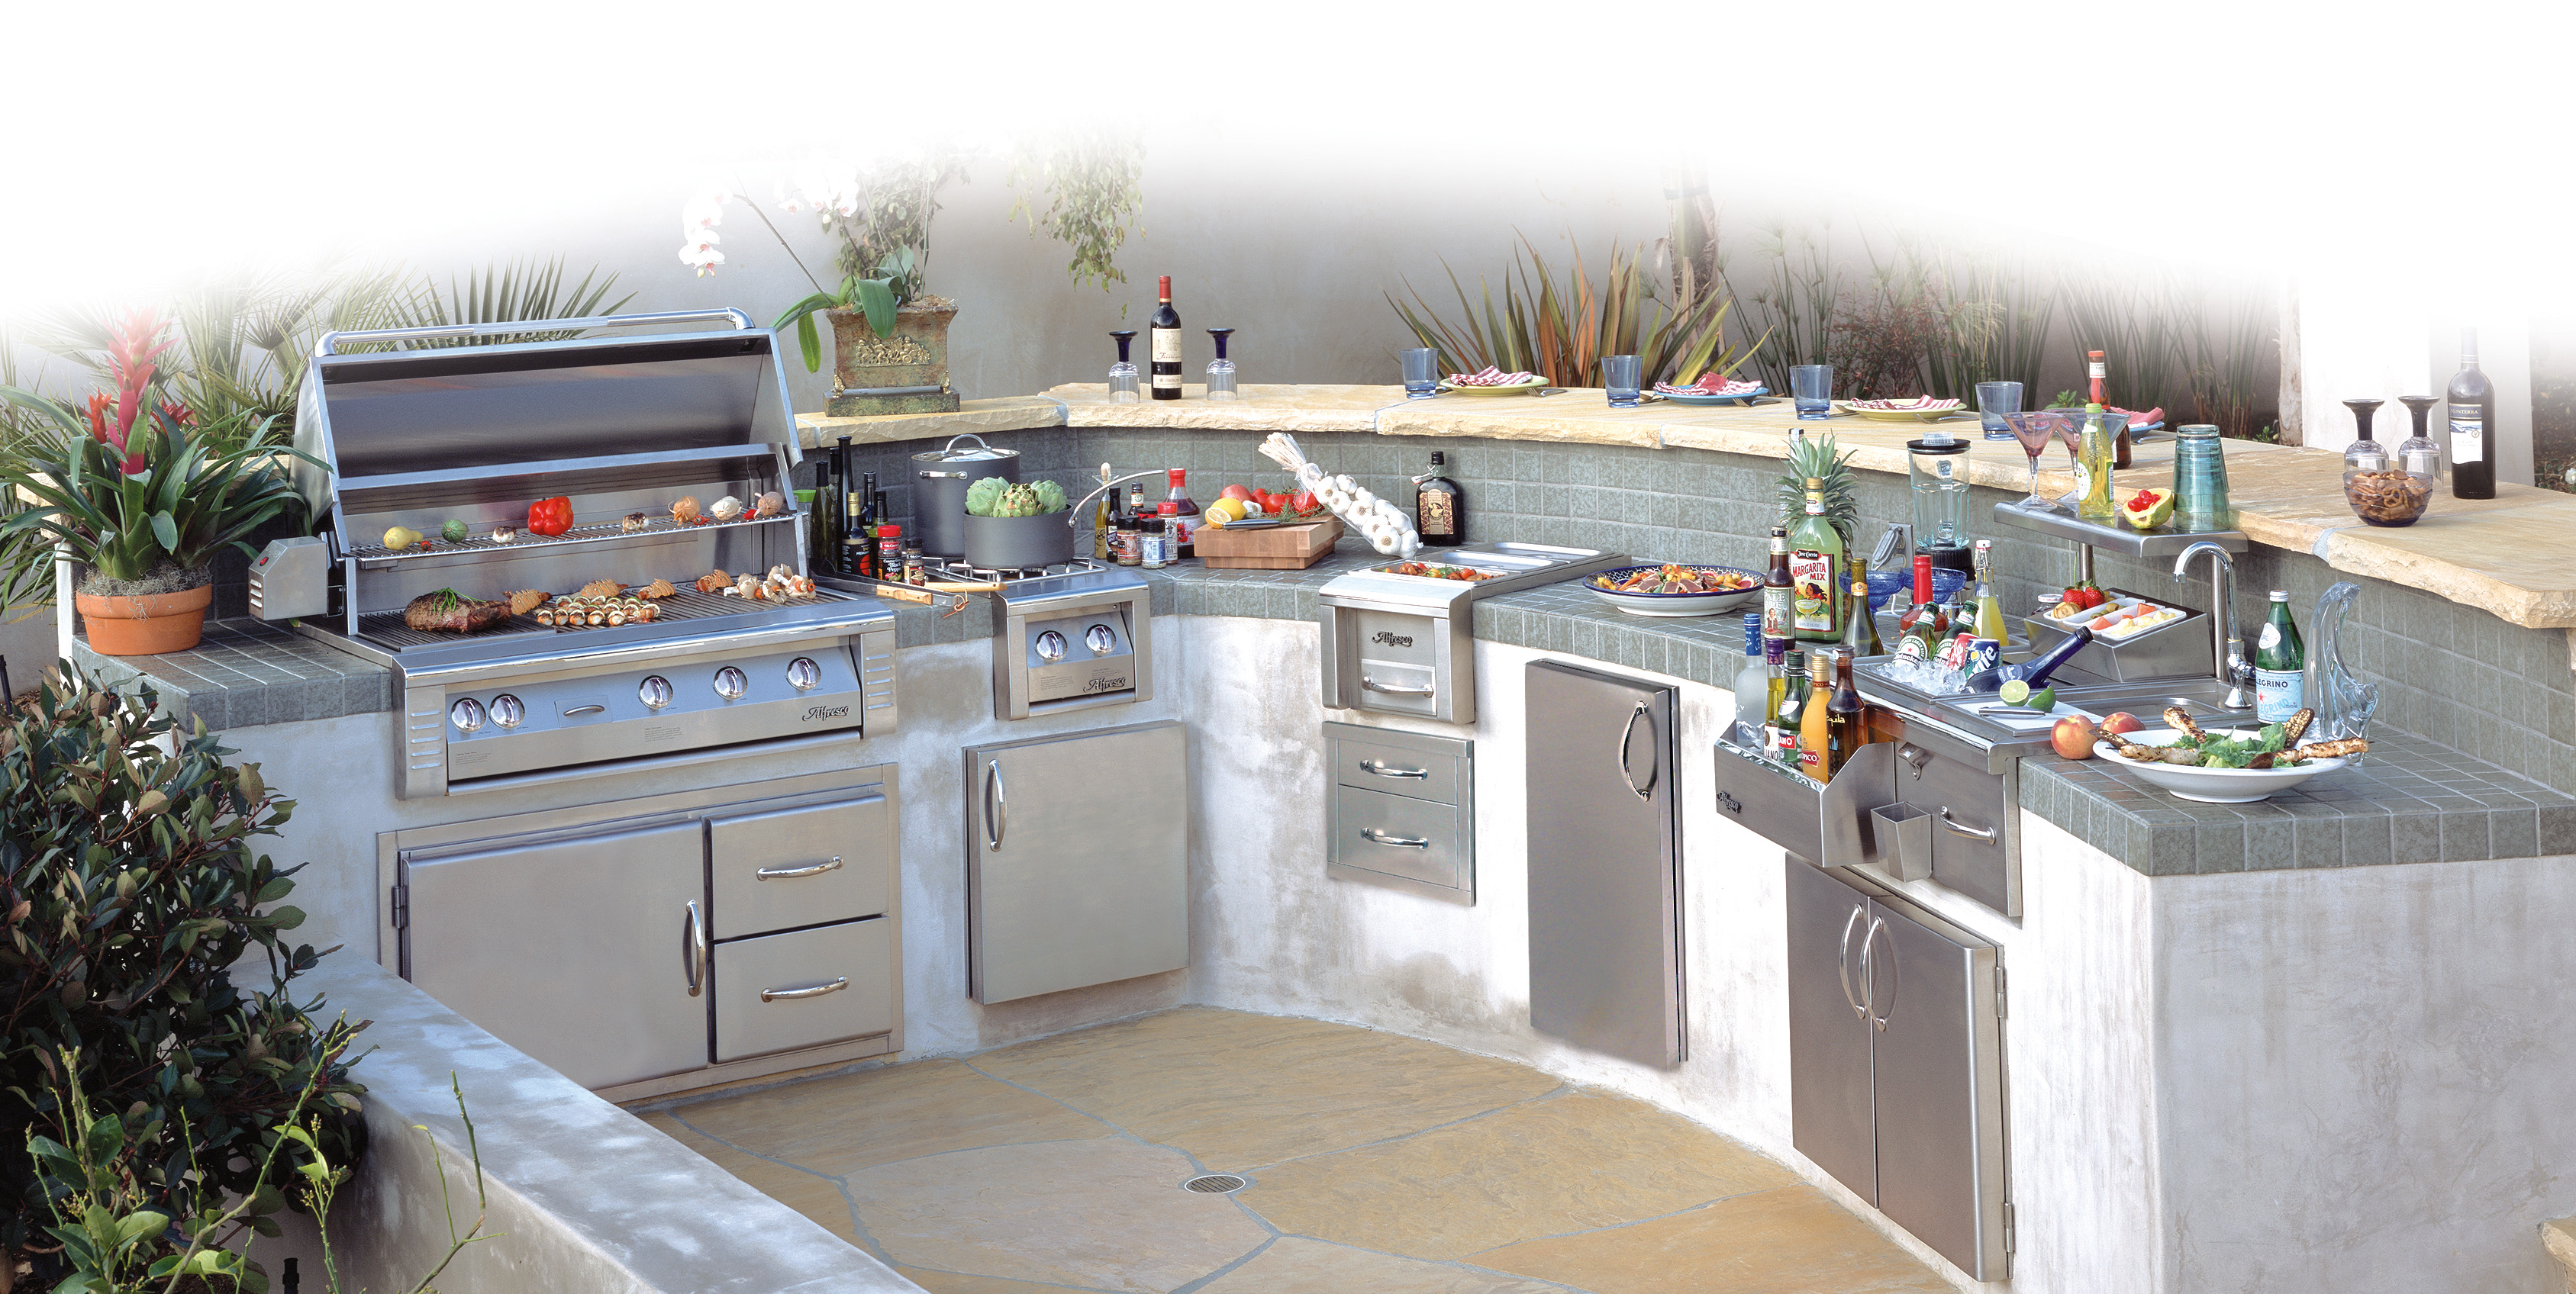 7352486578 A1bed3dcc2 O Las Vegas Outdoor Kitchens And Barbecues